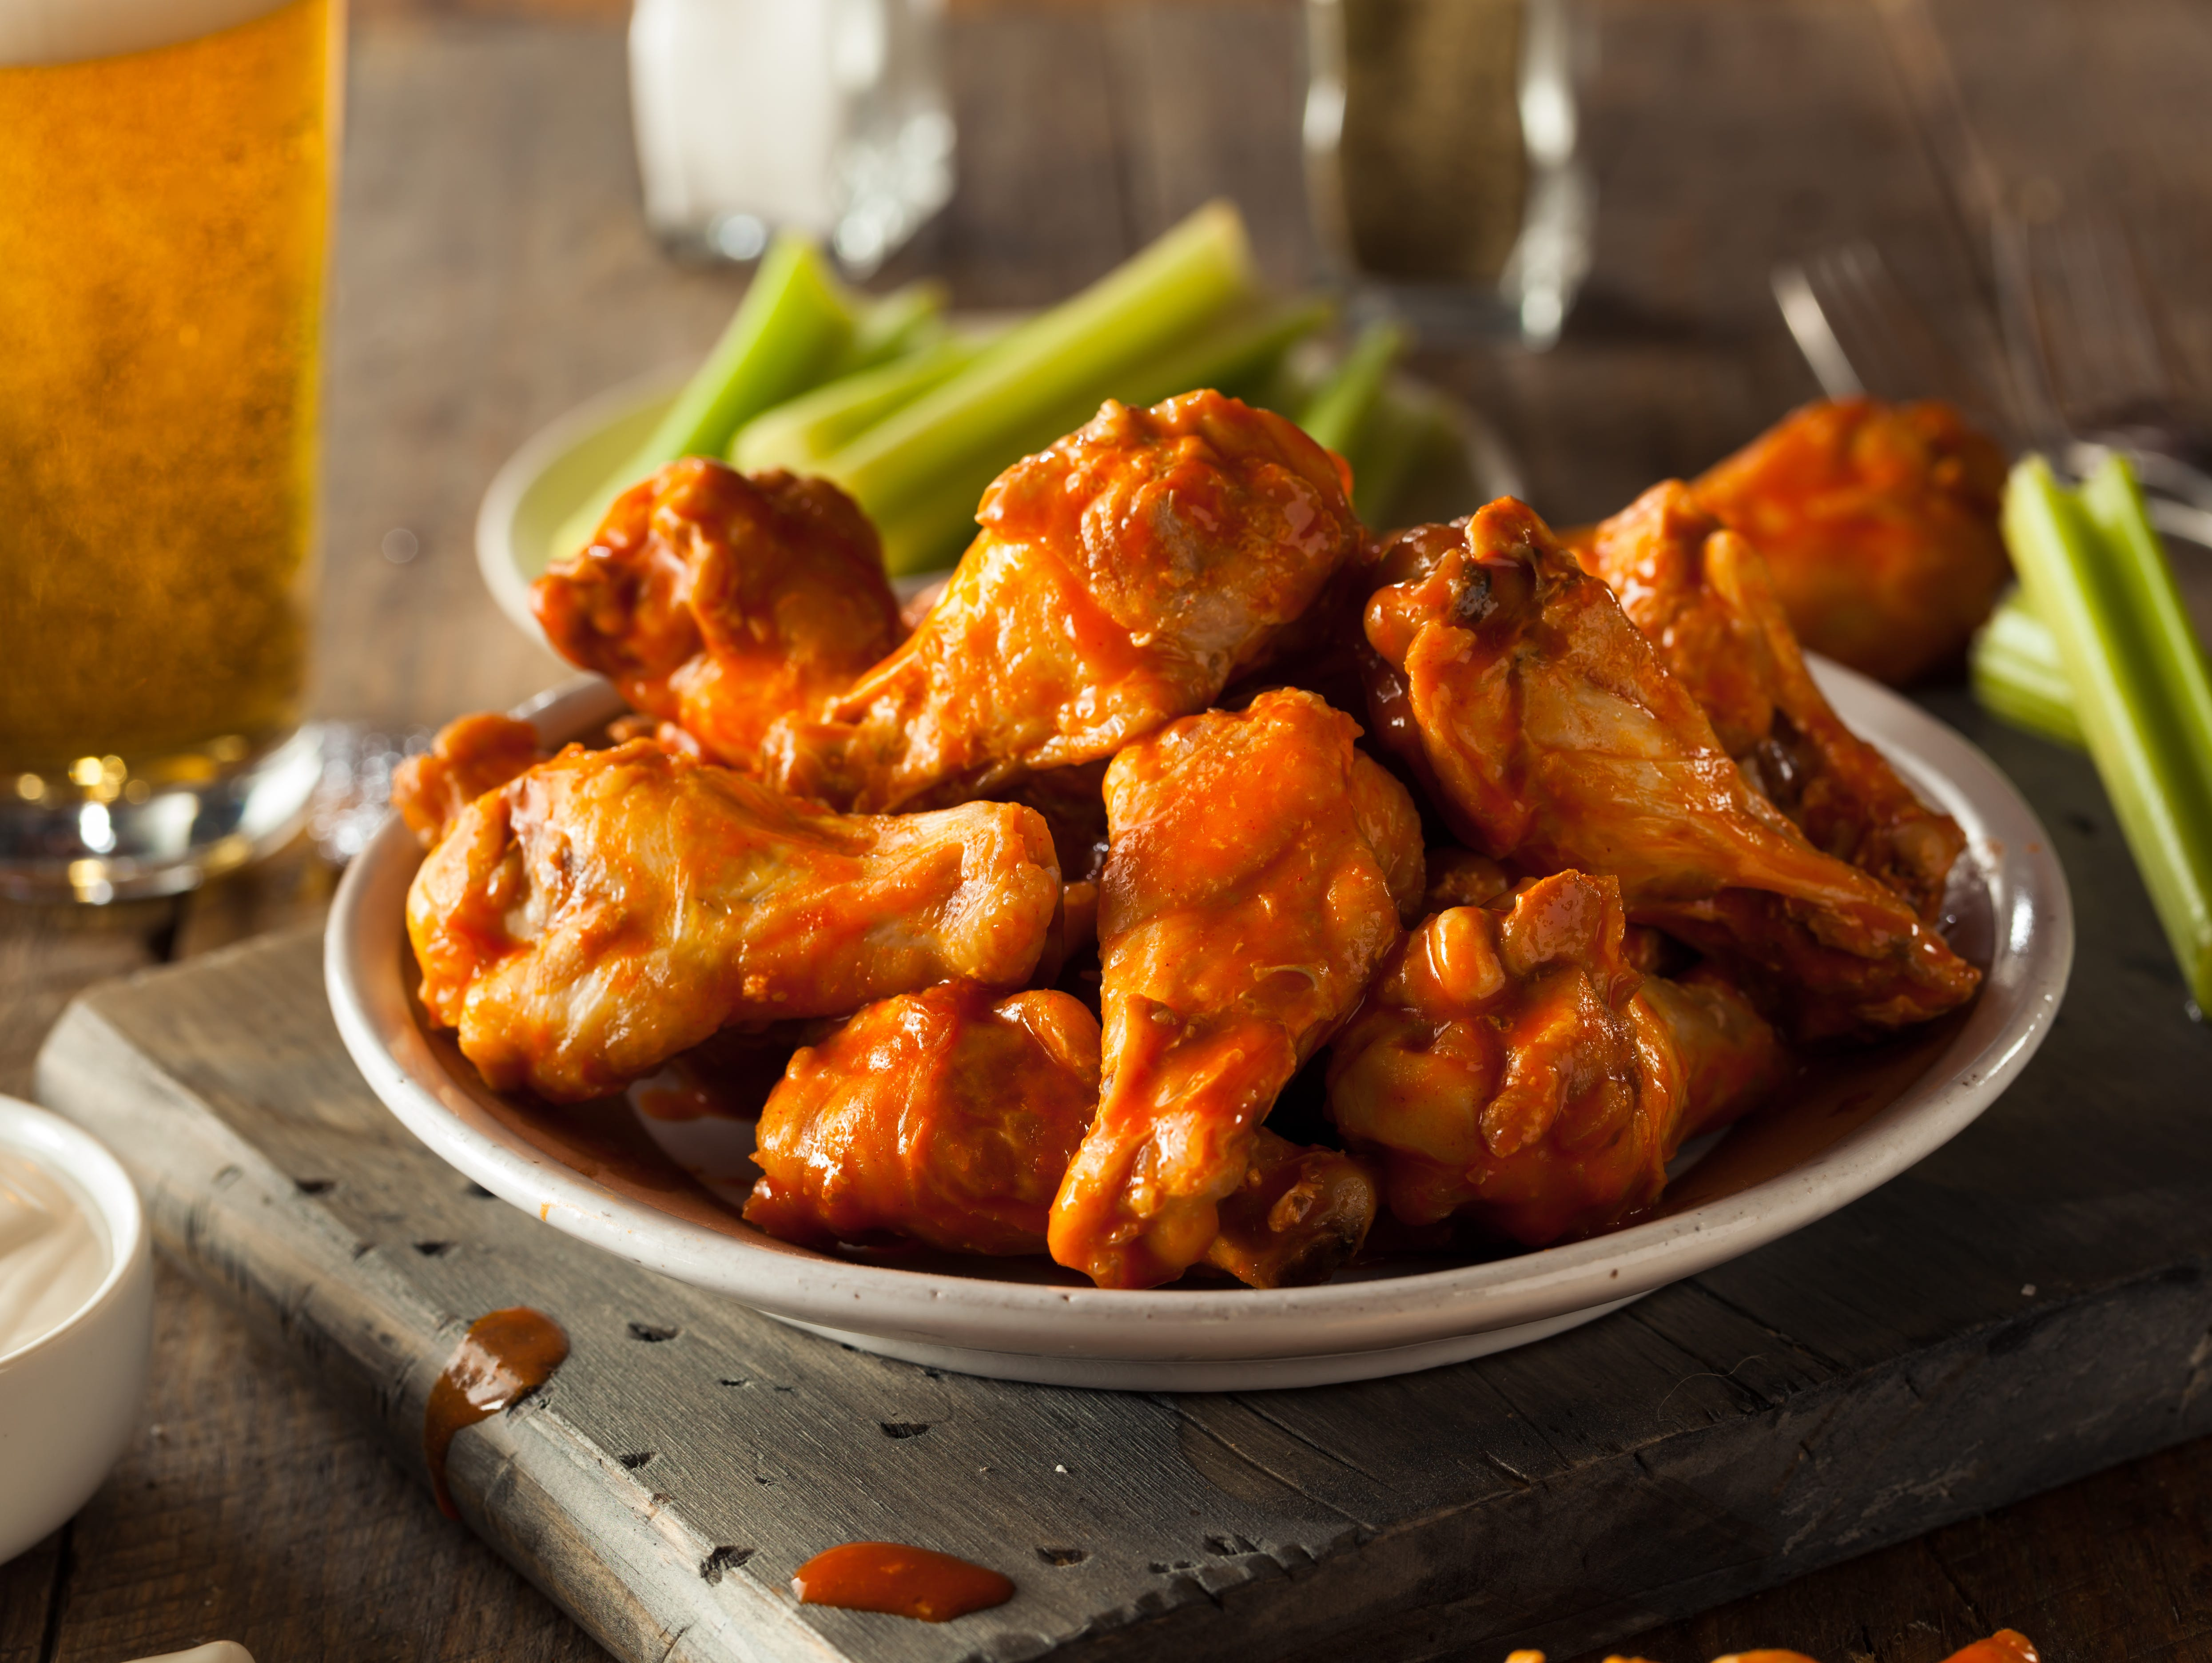 Enjoy a FREE snack size wings or save $5.00 OFF any order of $25 or more.